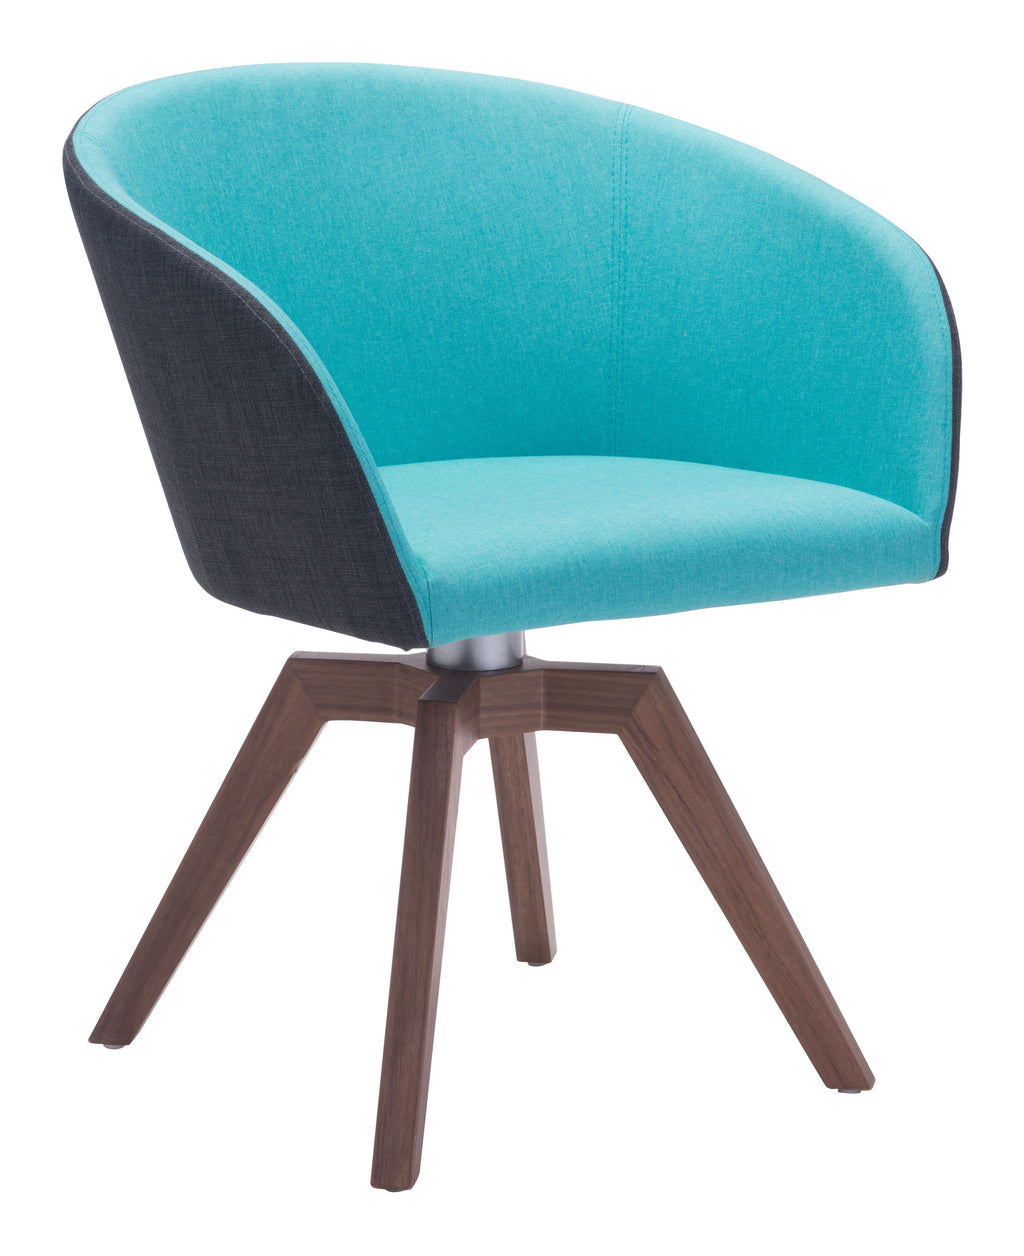 Wander Swivel Dining Chair (Blue & Gray)